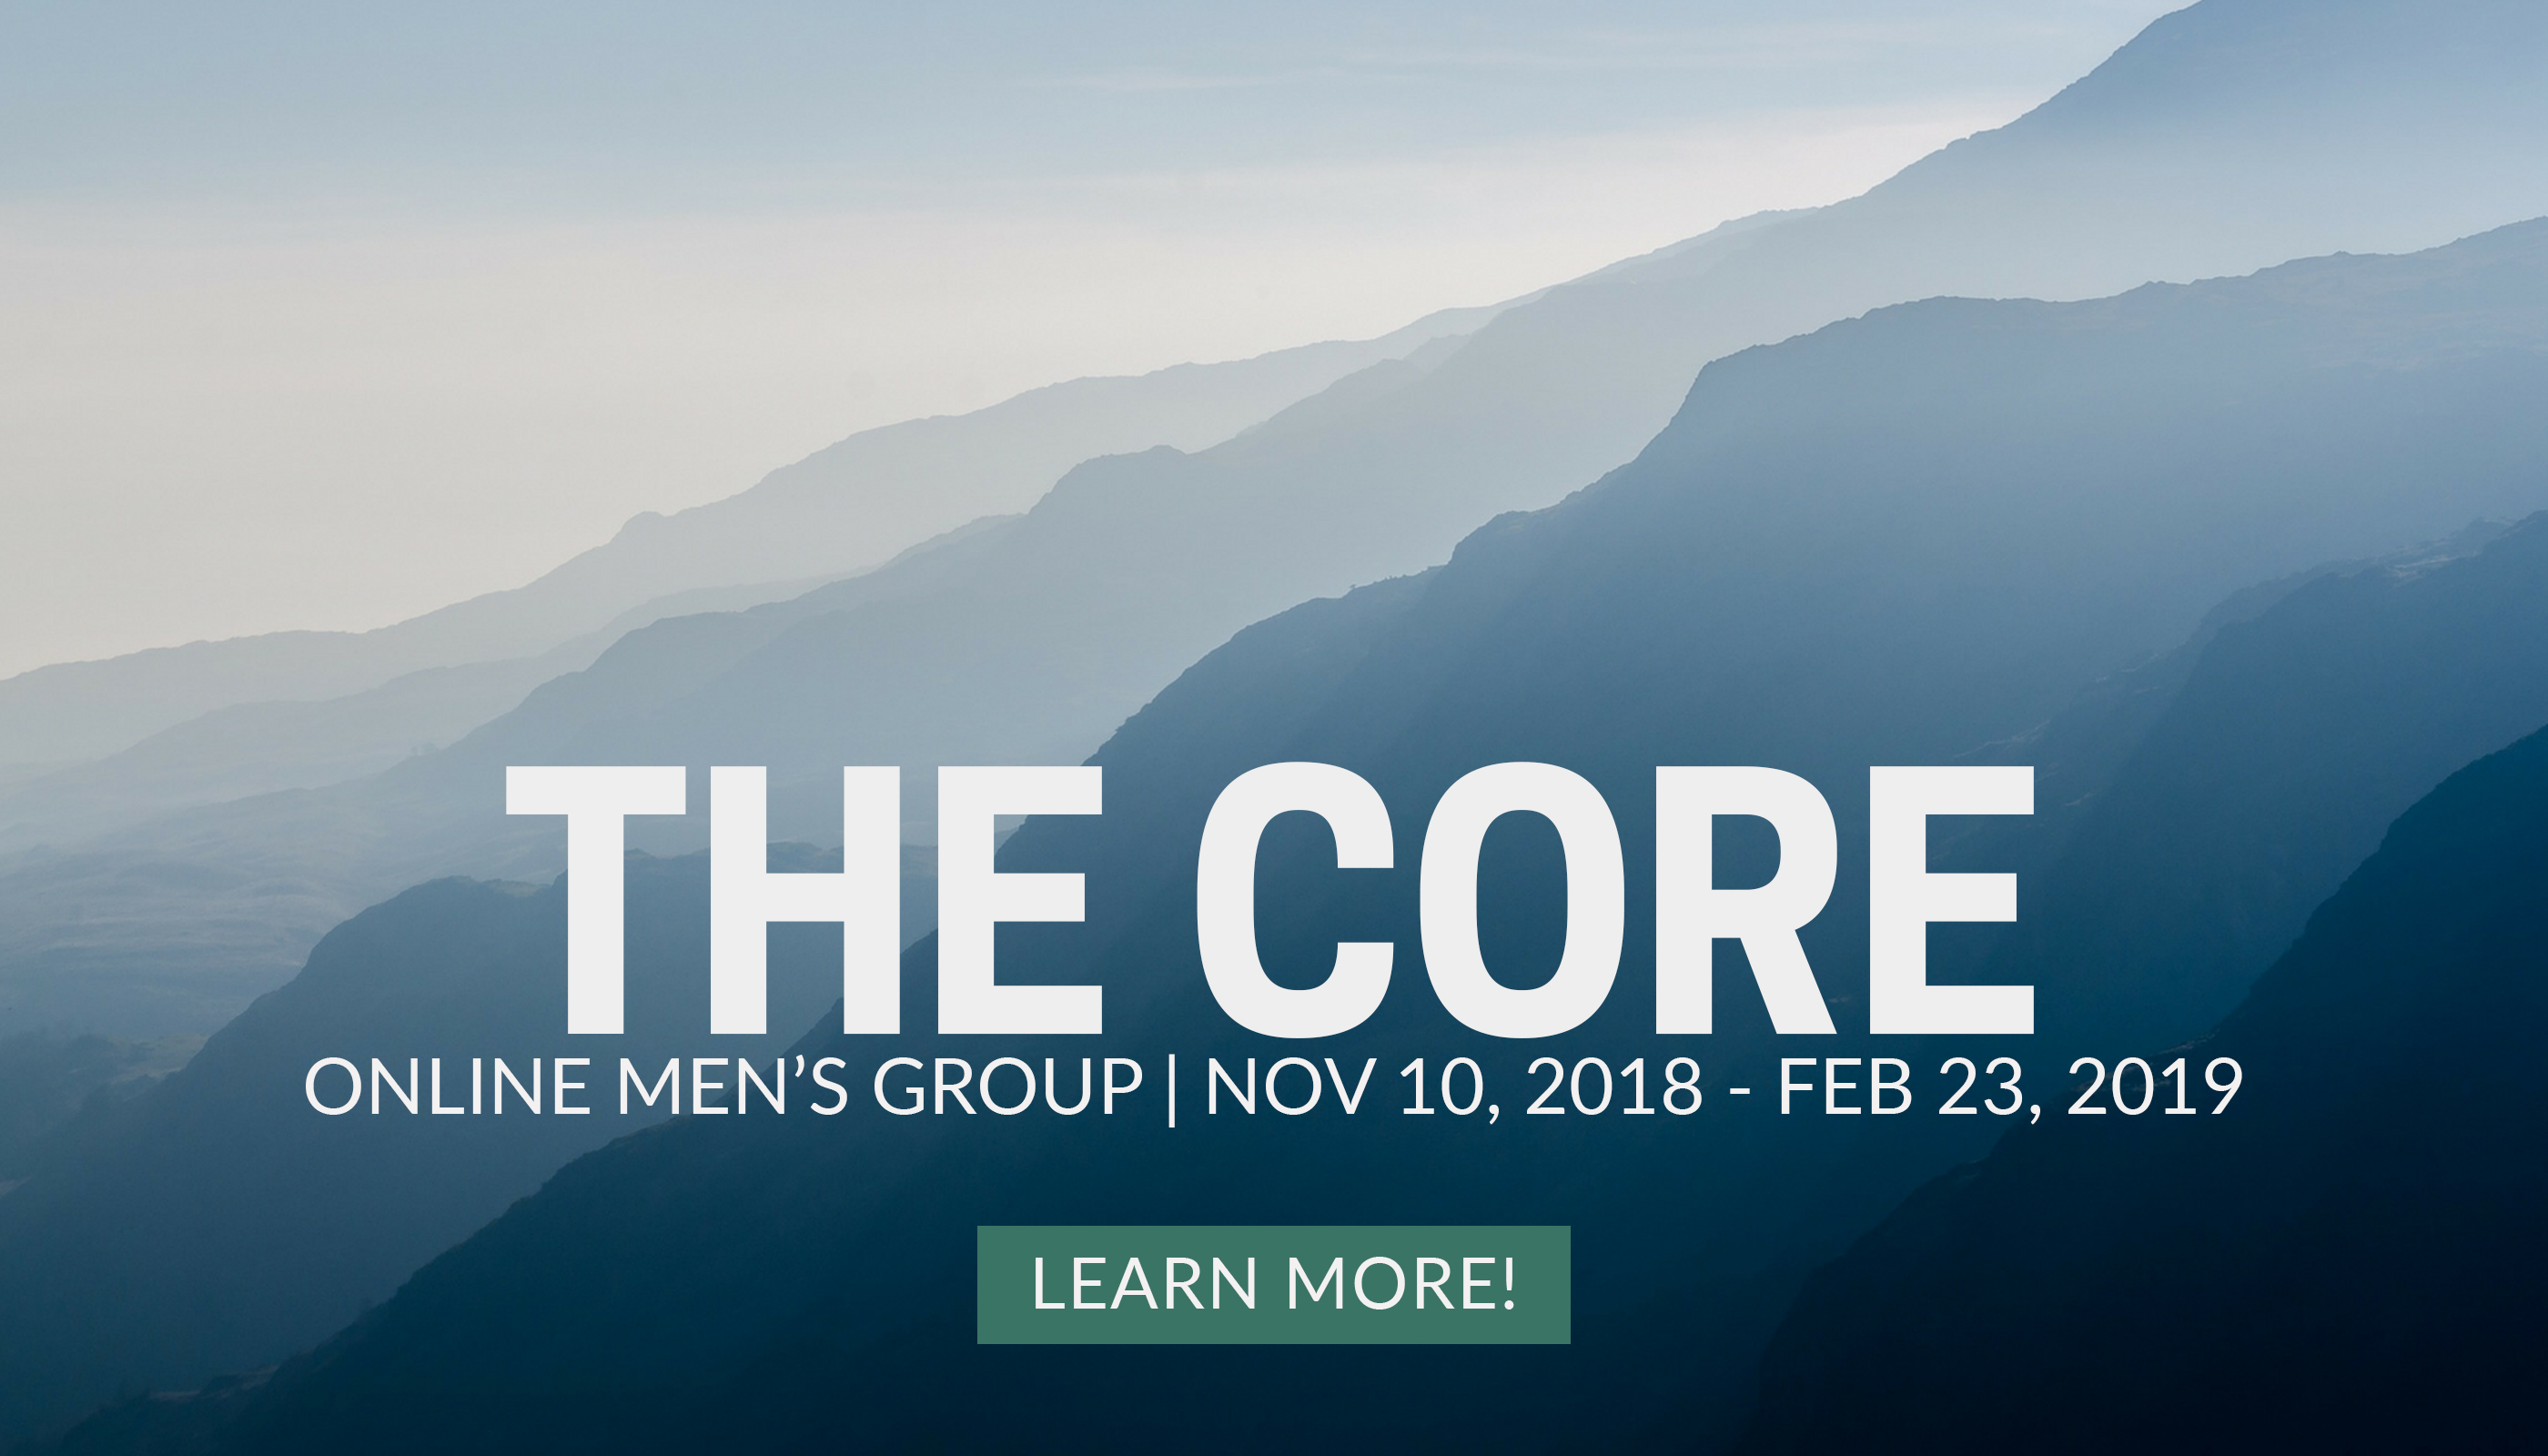 https://marriagerecoverycenter.com/wp-content/uploads/2018/09/The-Core-event-calendar-Nov-2018.jpg